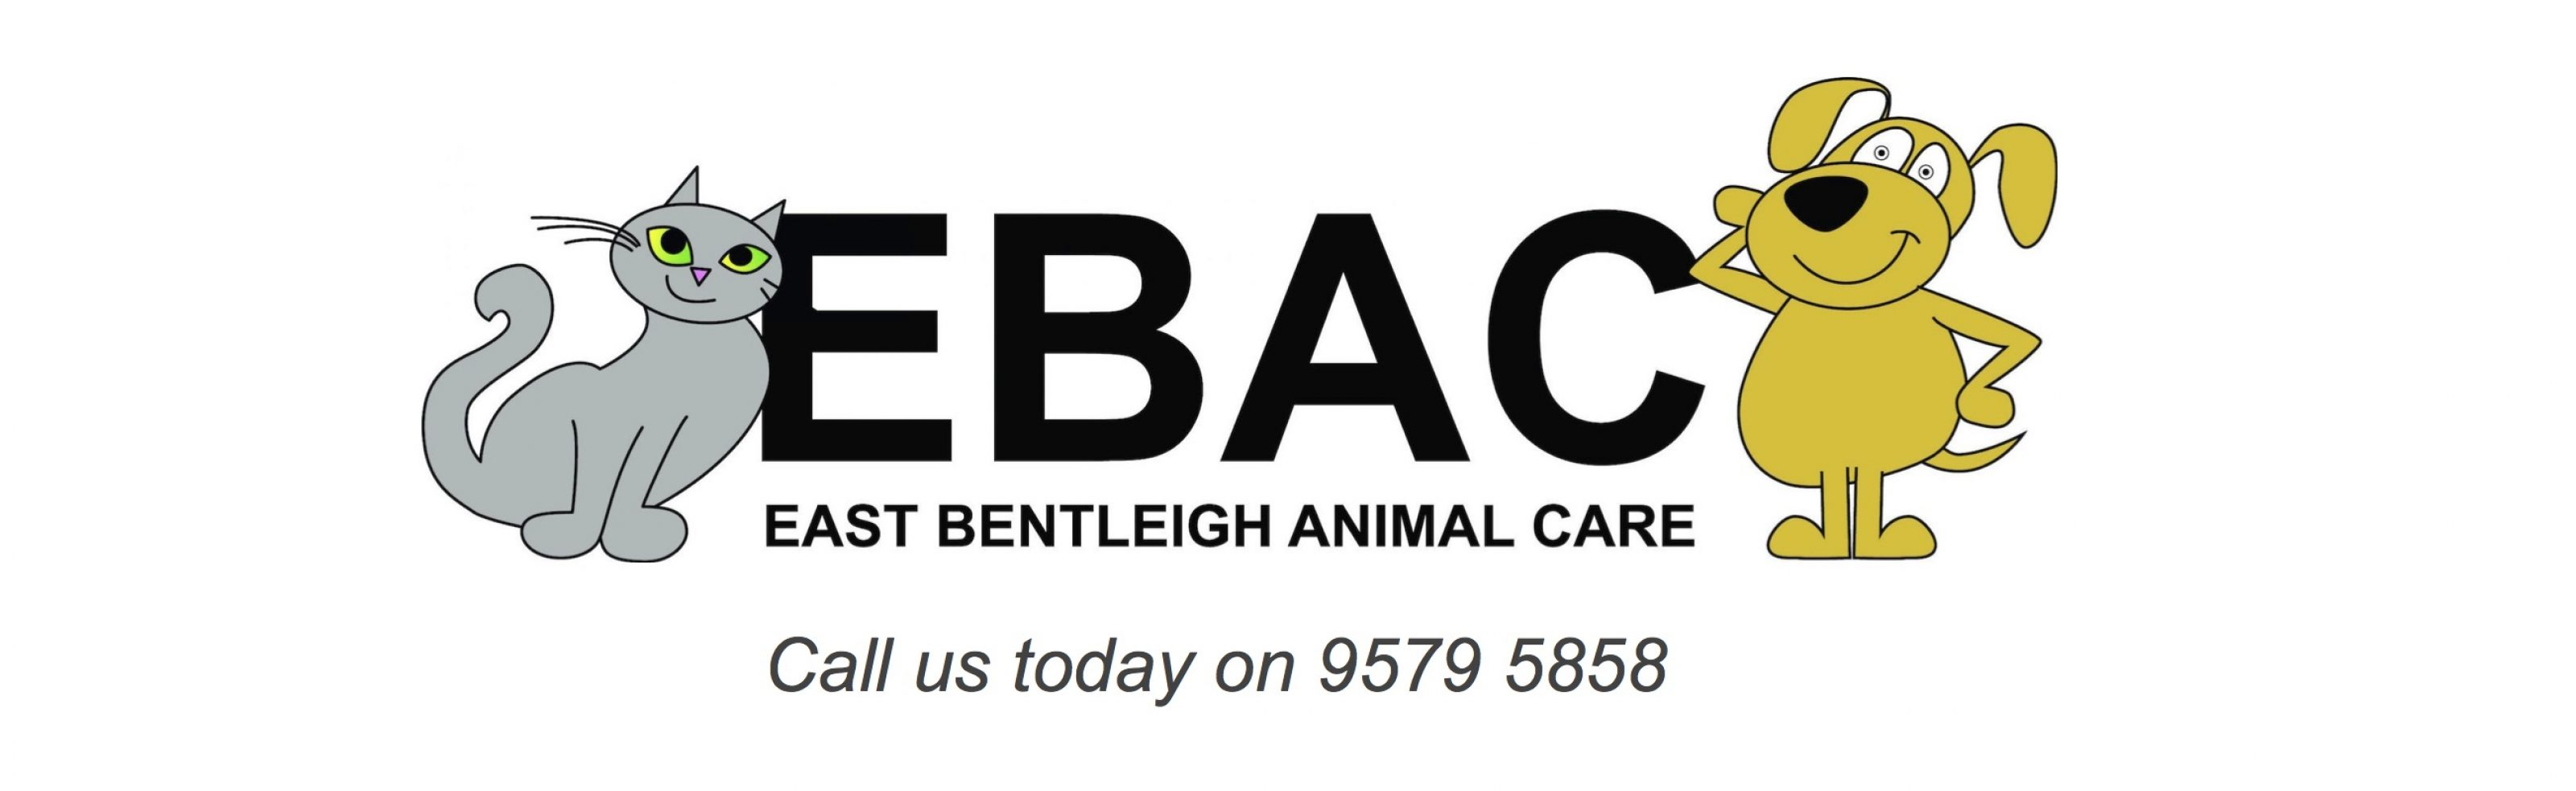 east bentleigh animal care